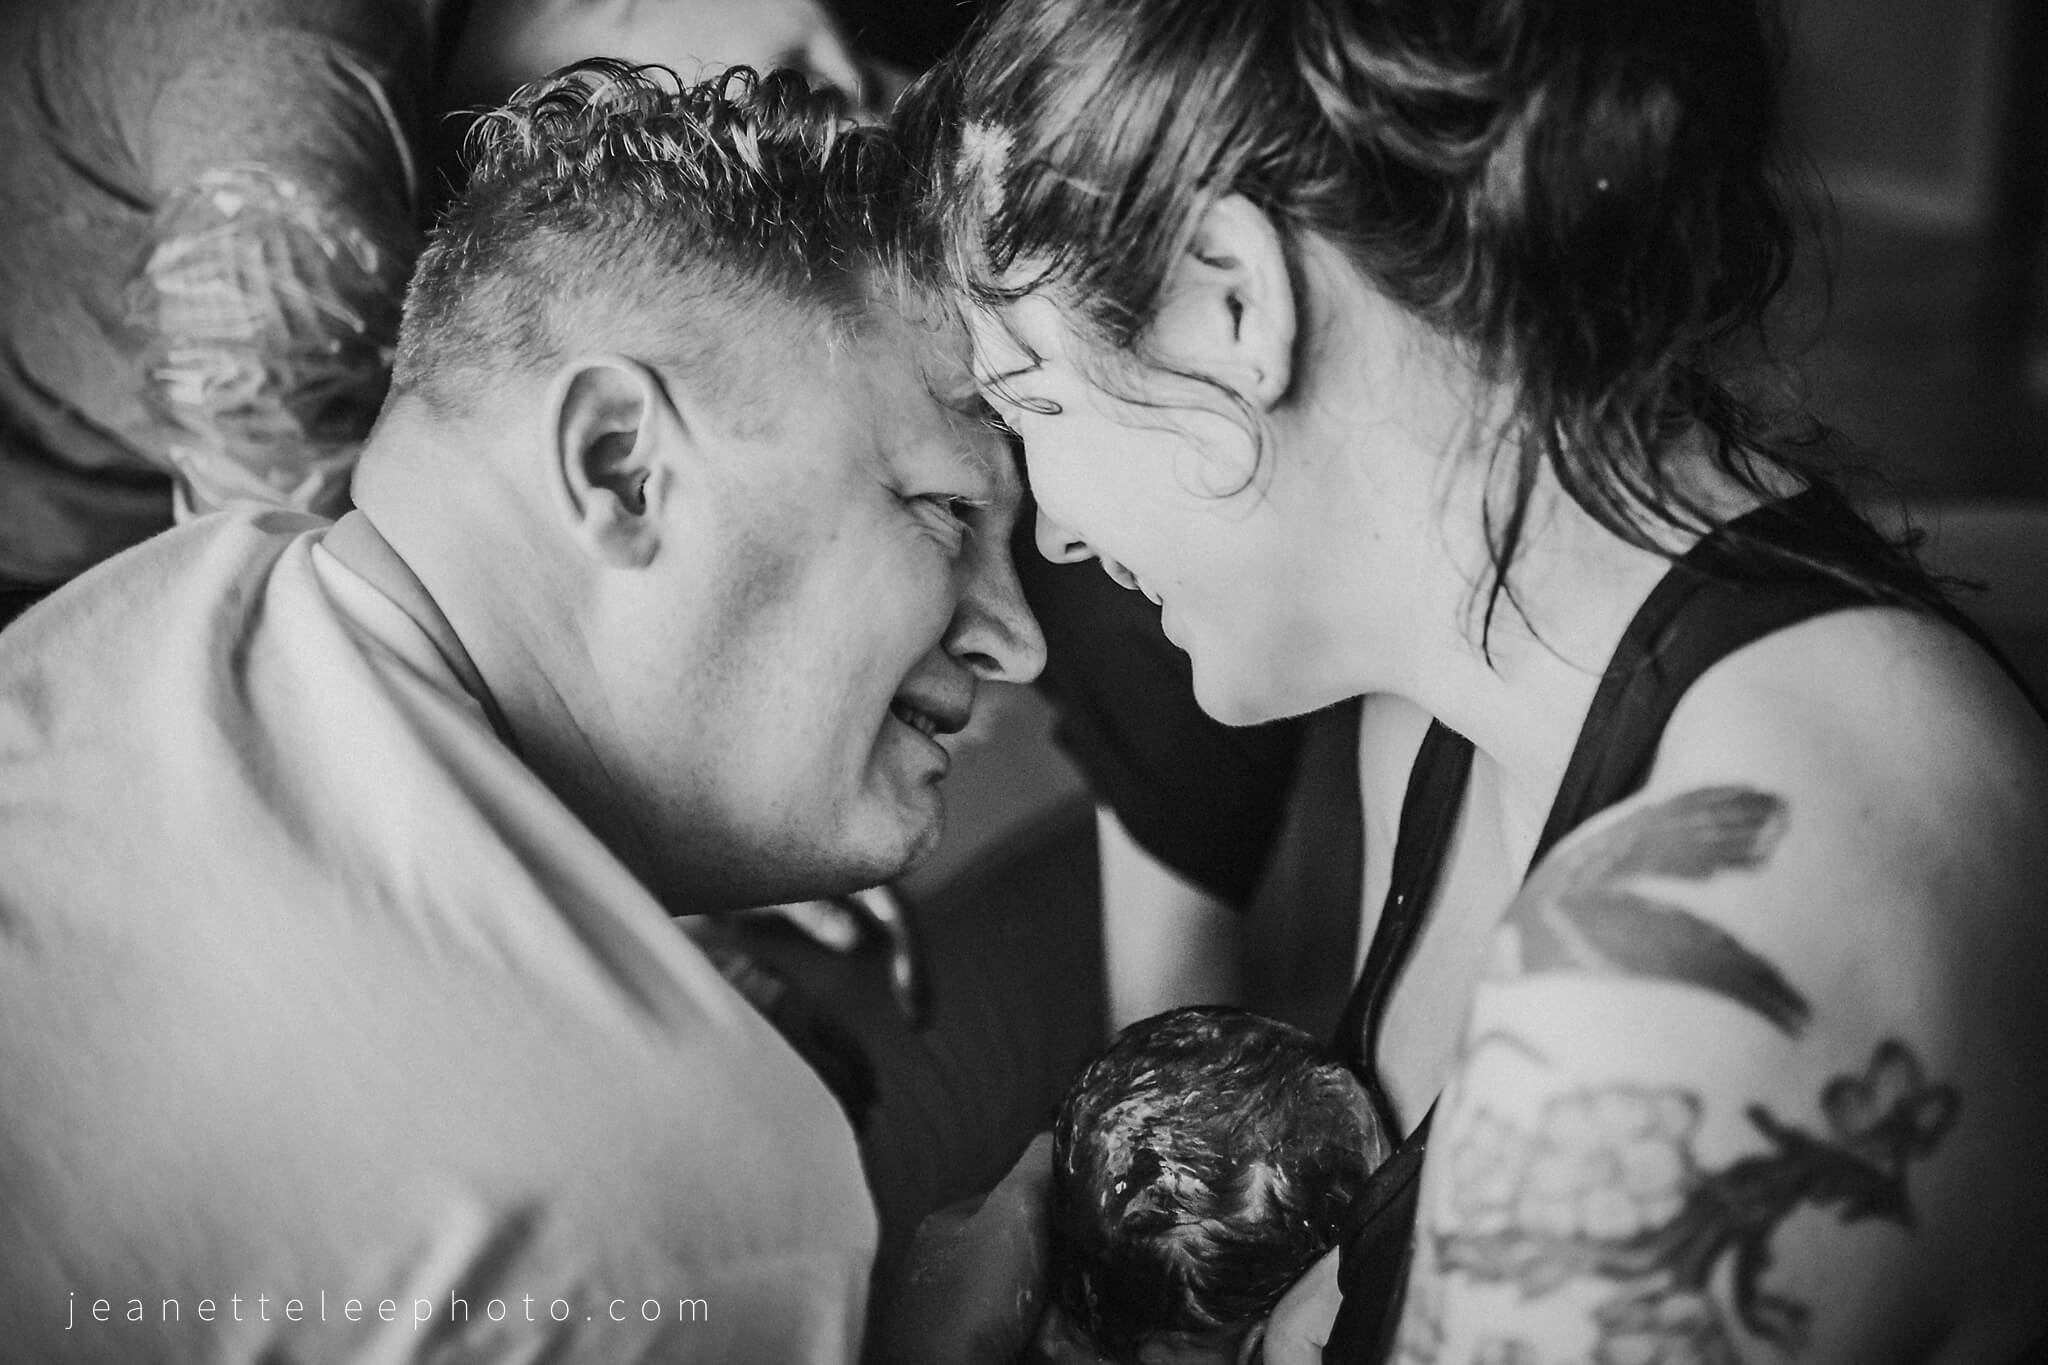 Birth Photography Portland Oregon - Jeanette Lee Photography and Films